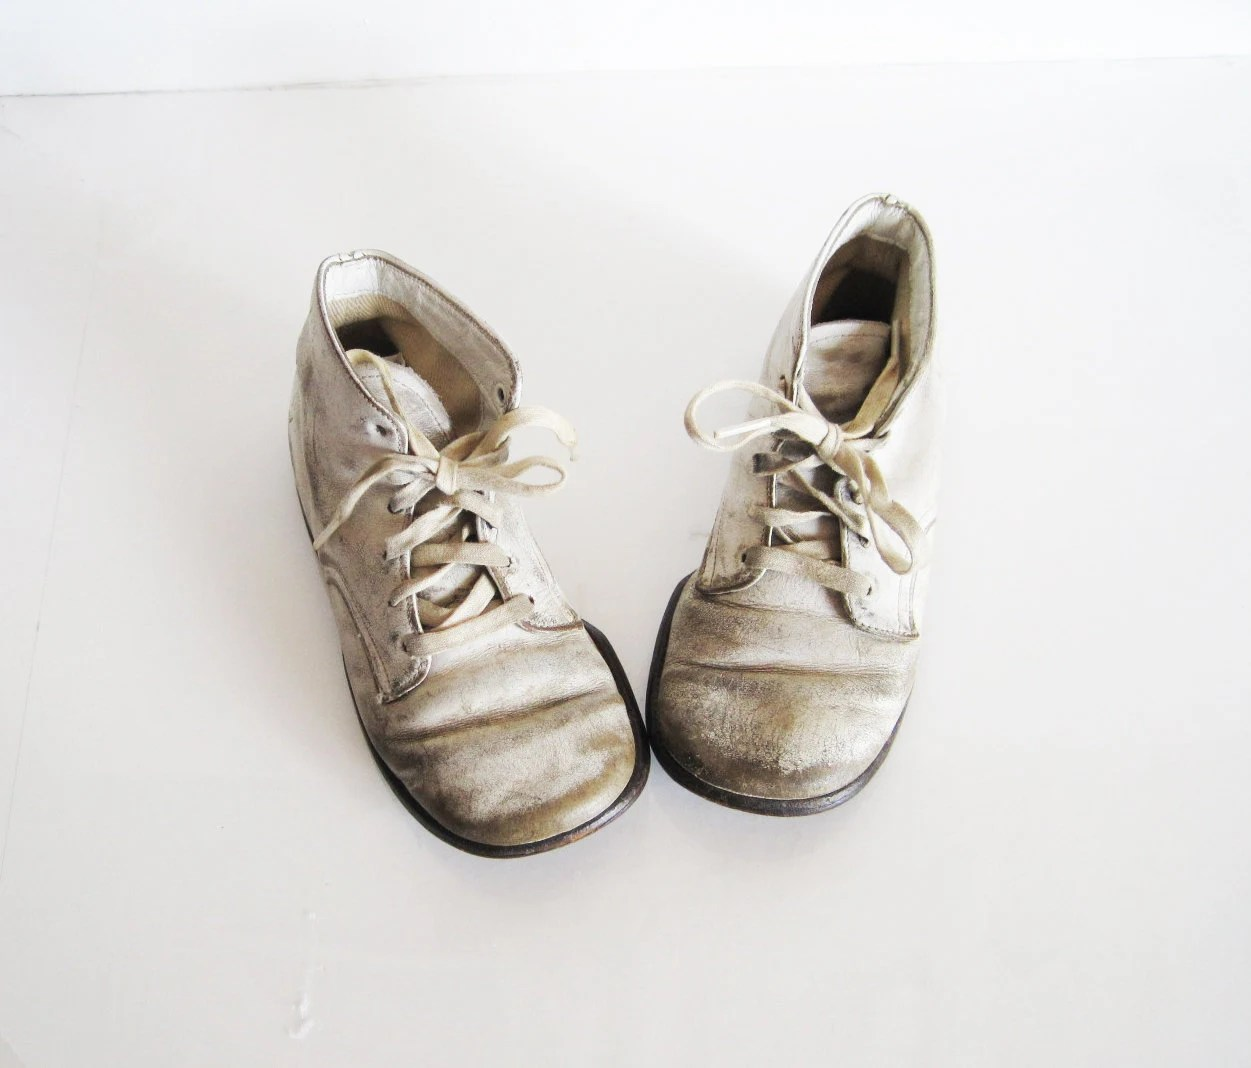 sweet vintage white leather children's shoes 1950s baby shoes - ReverseChronology